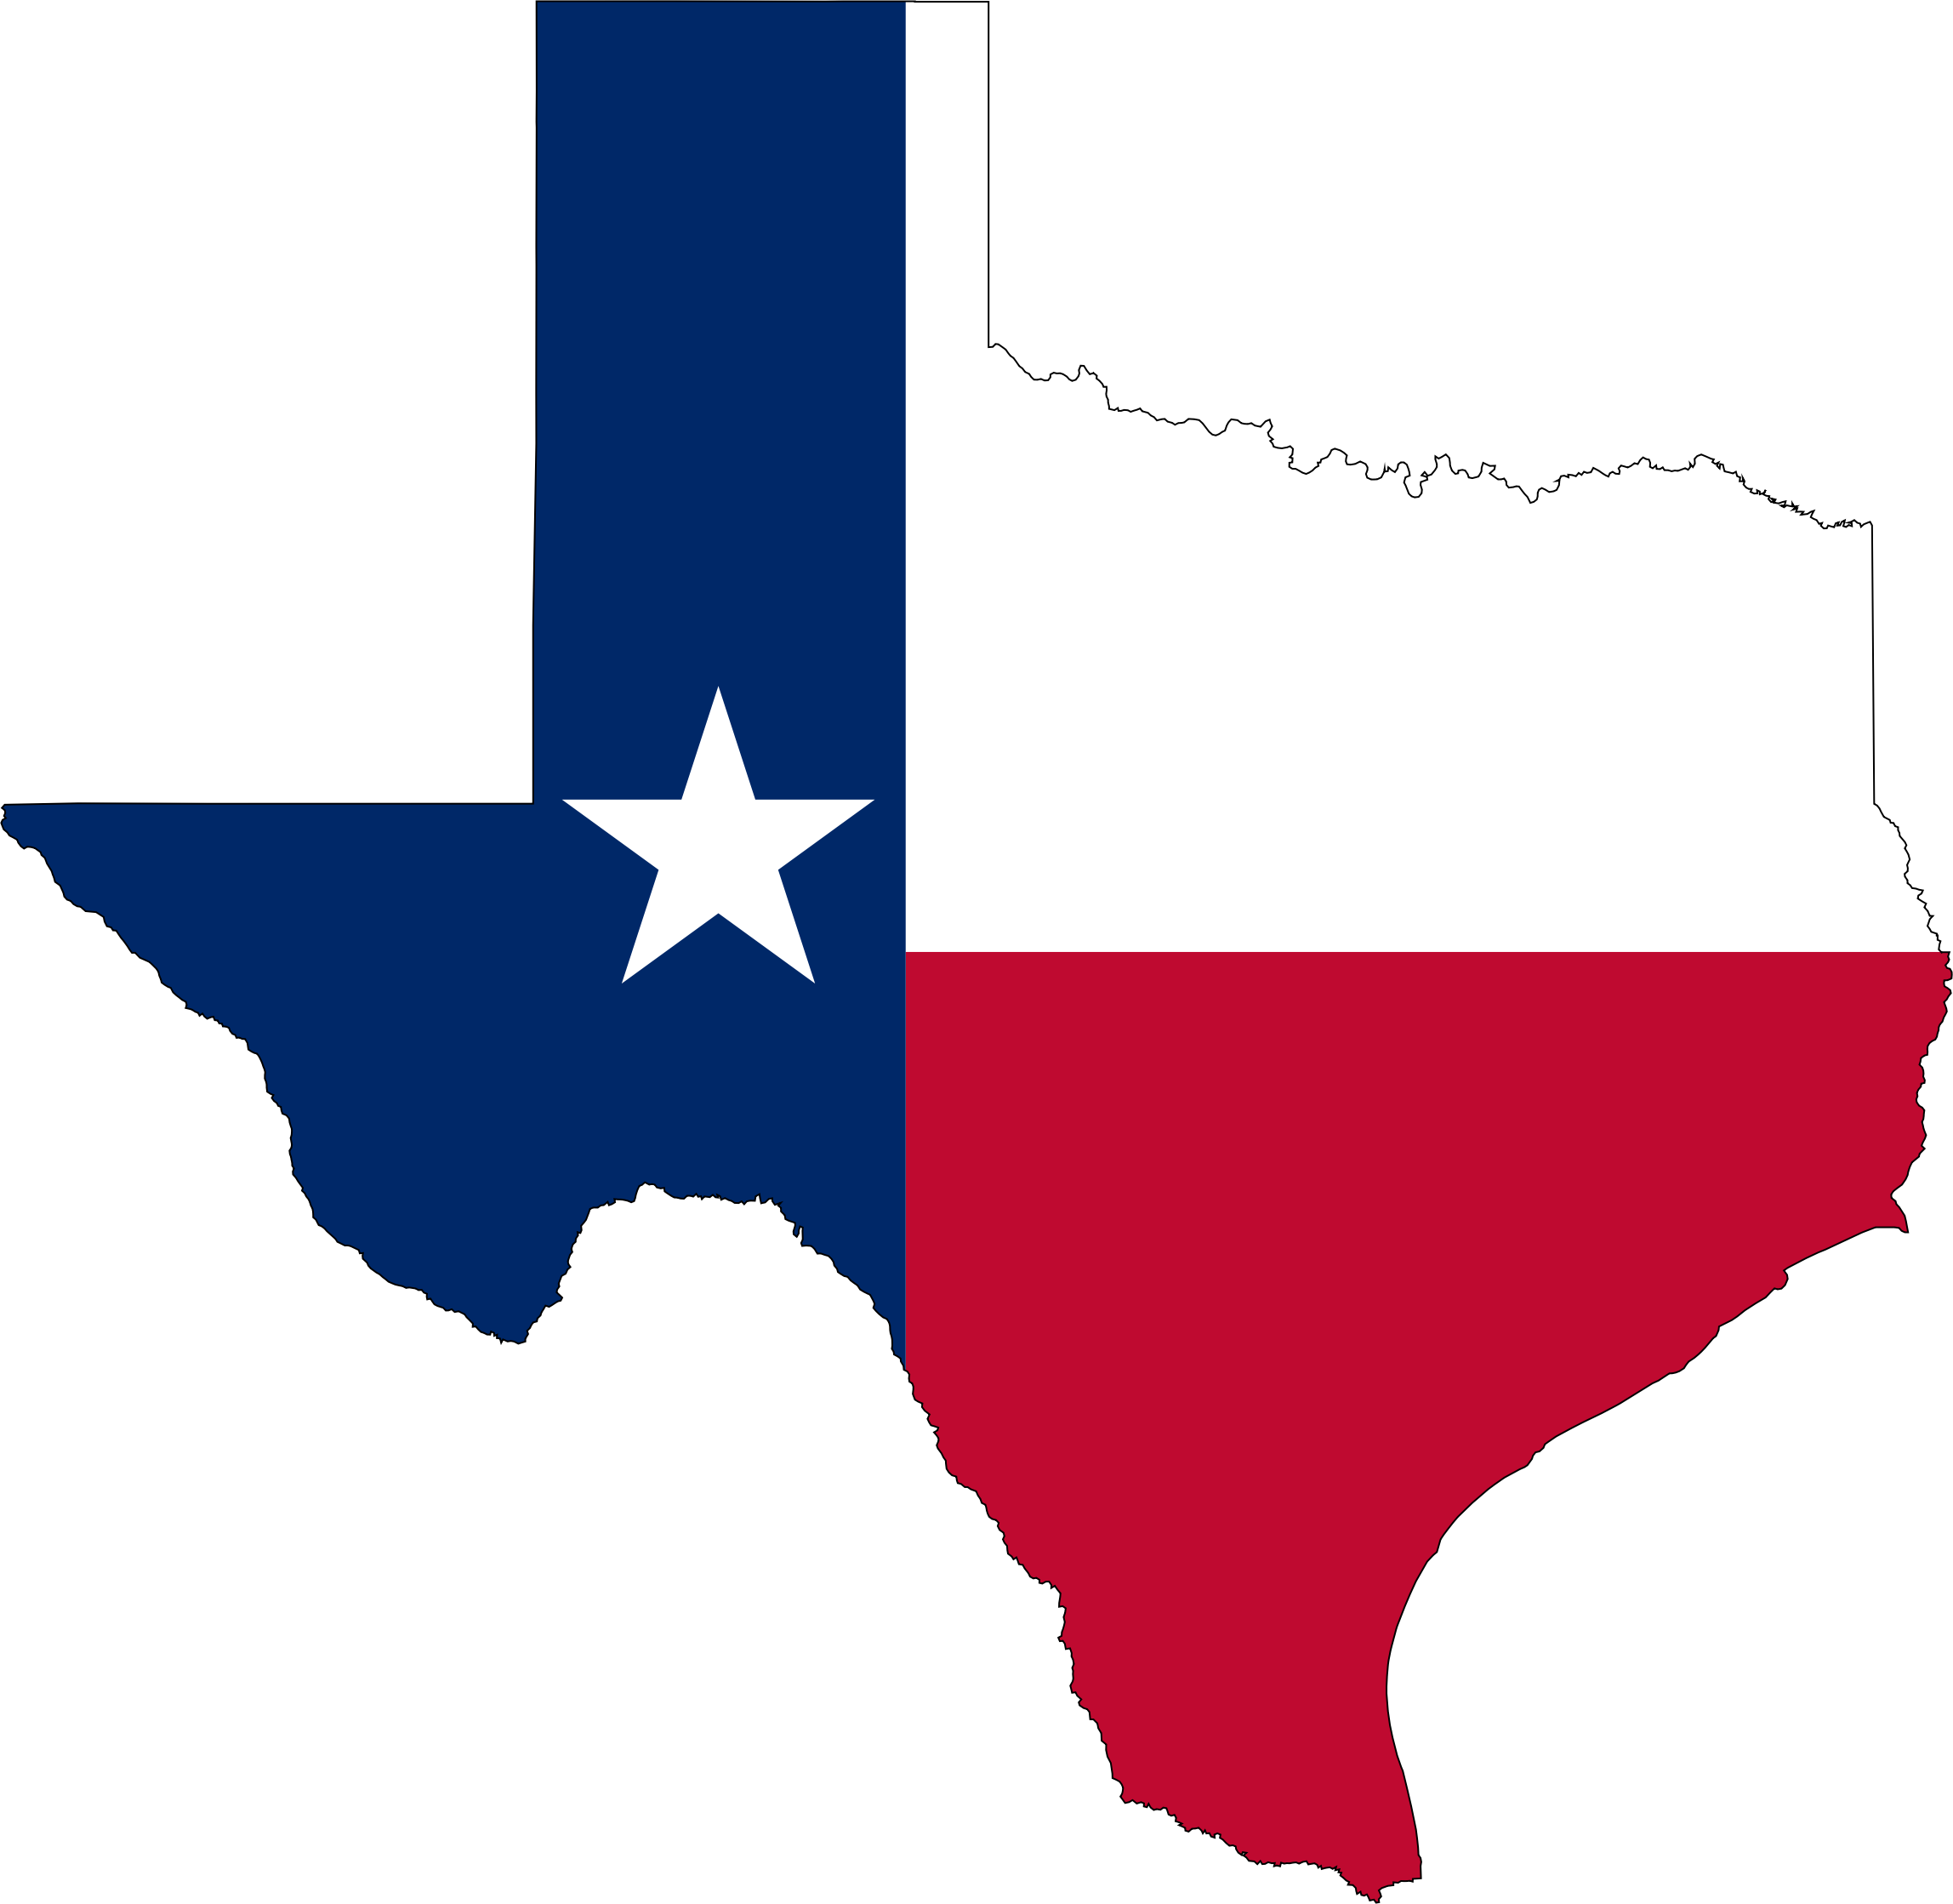 texas-icon-png